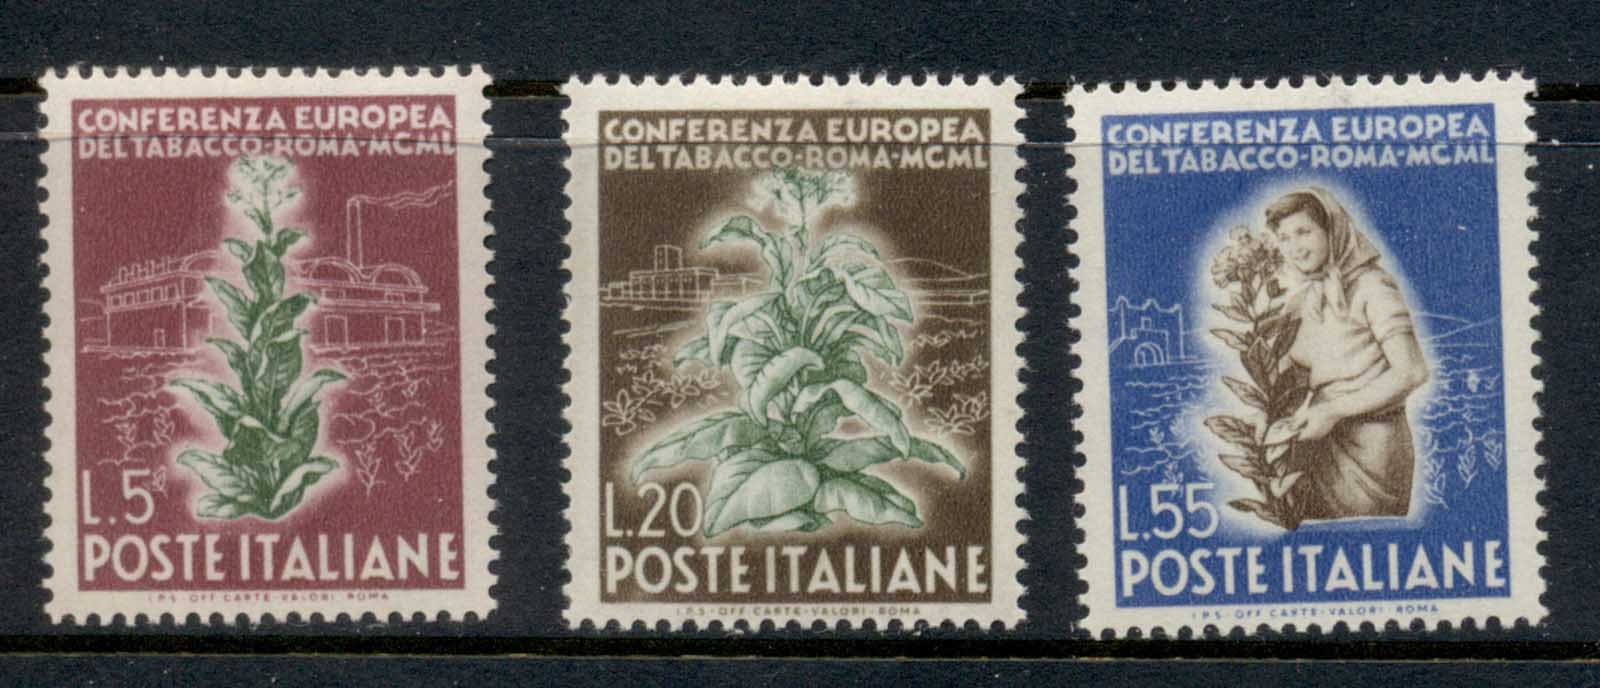 Italy 1950 European Tobacco Conference MUH